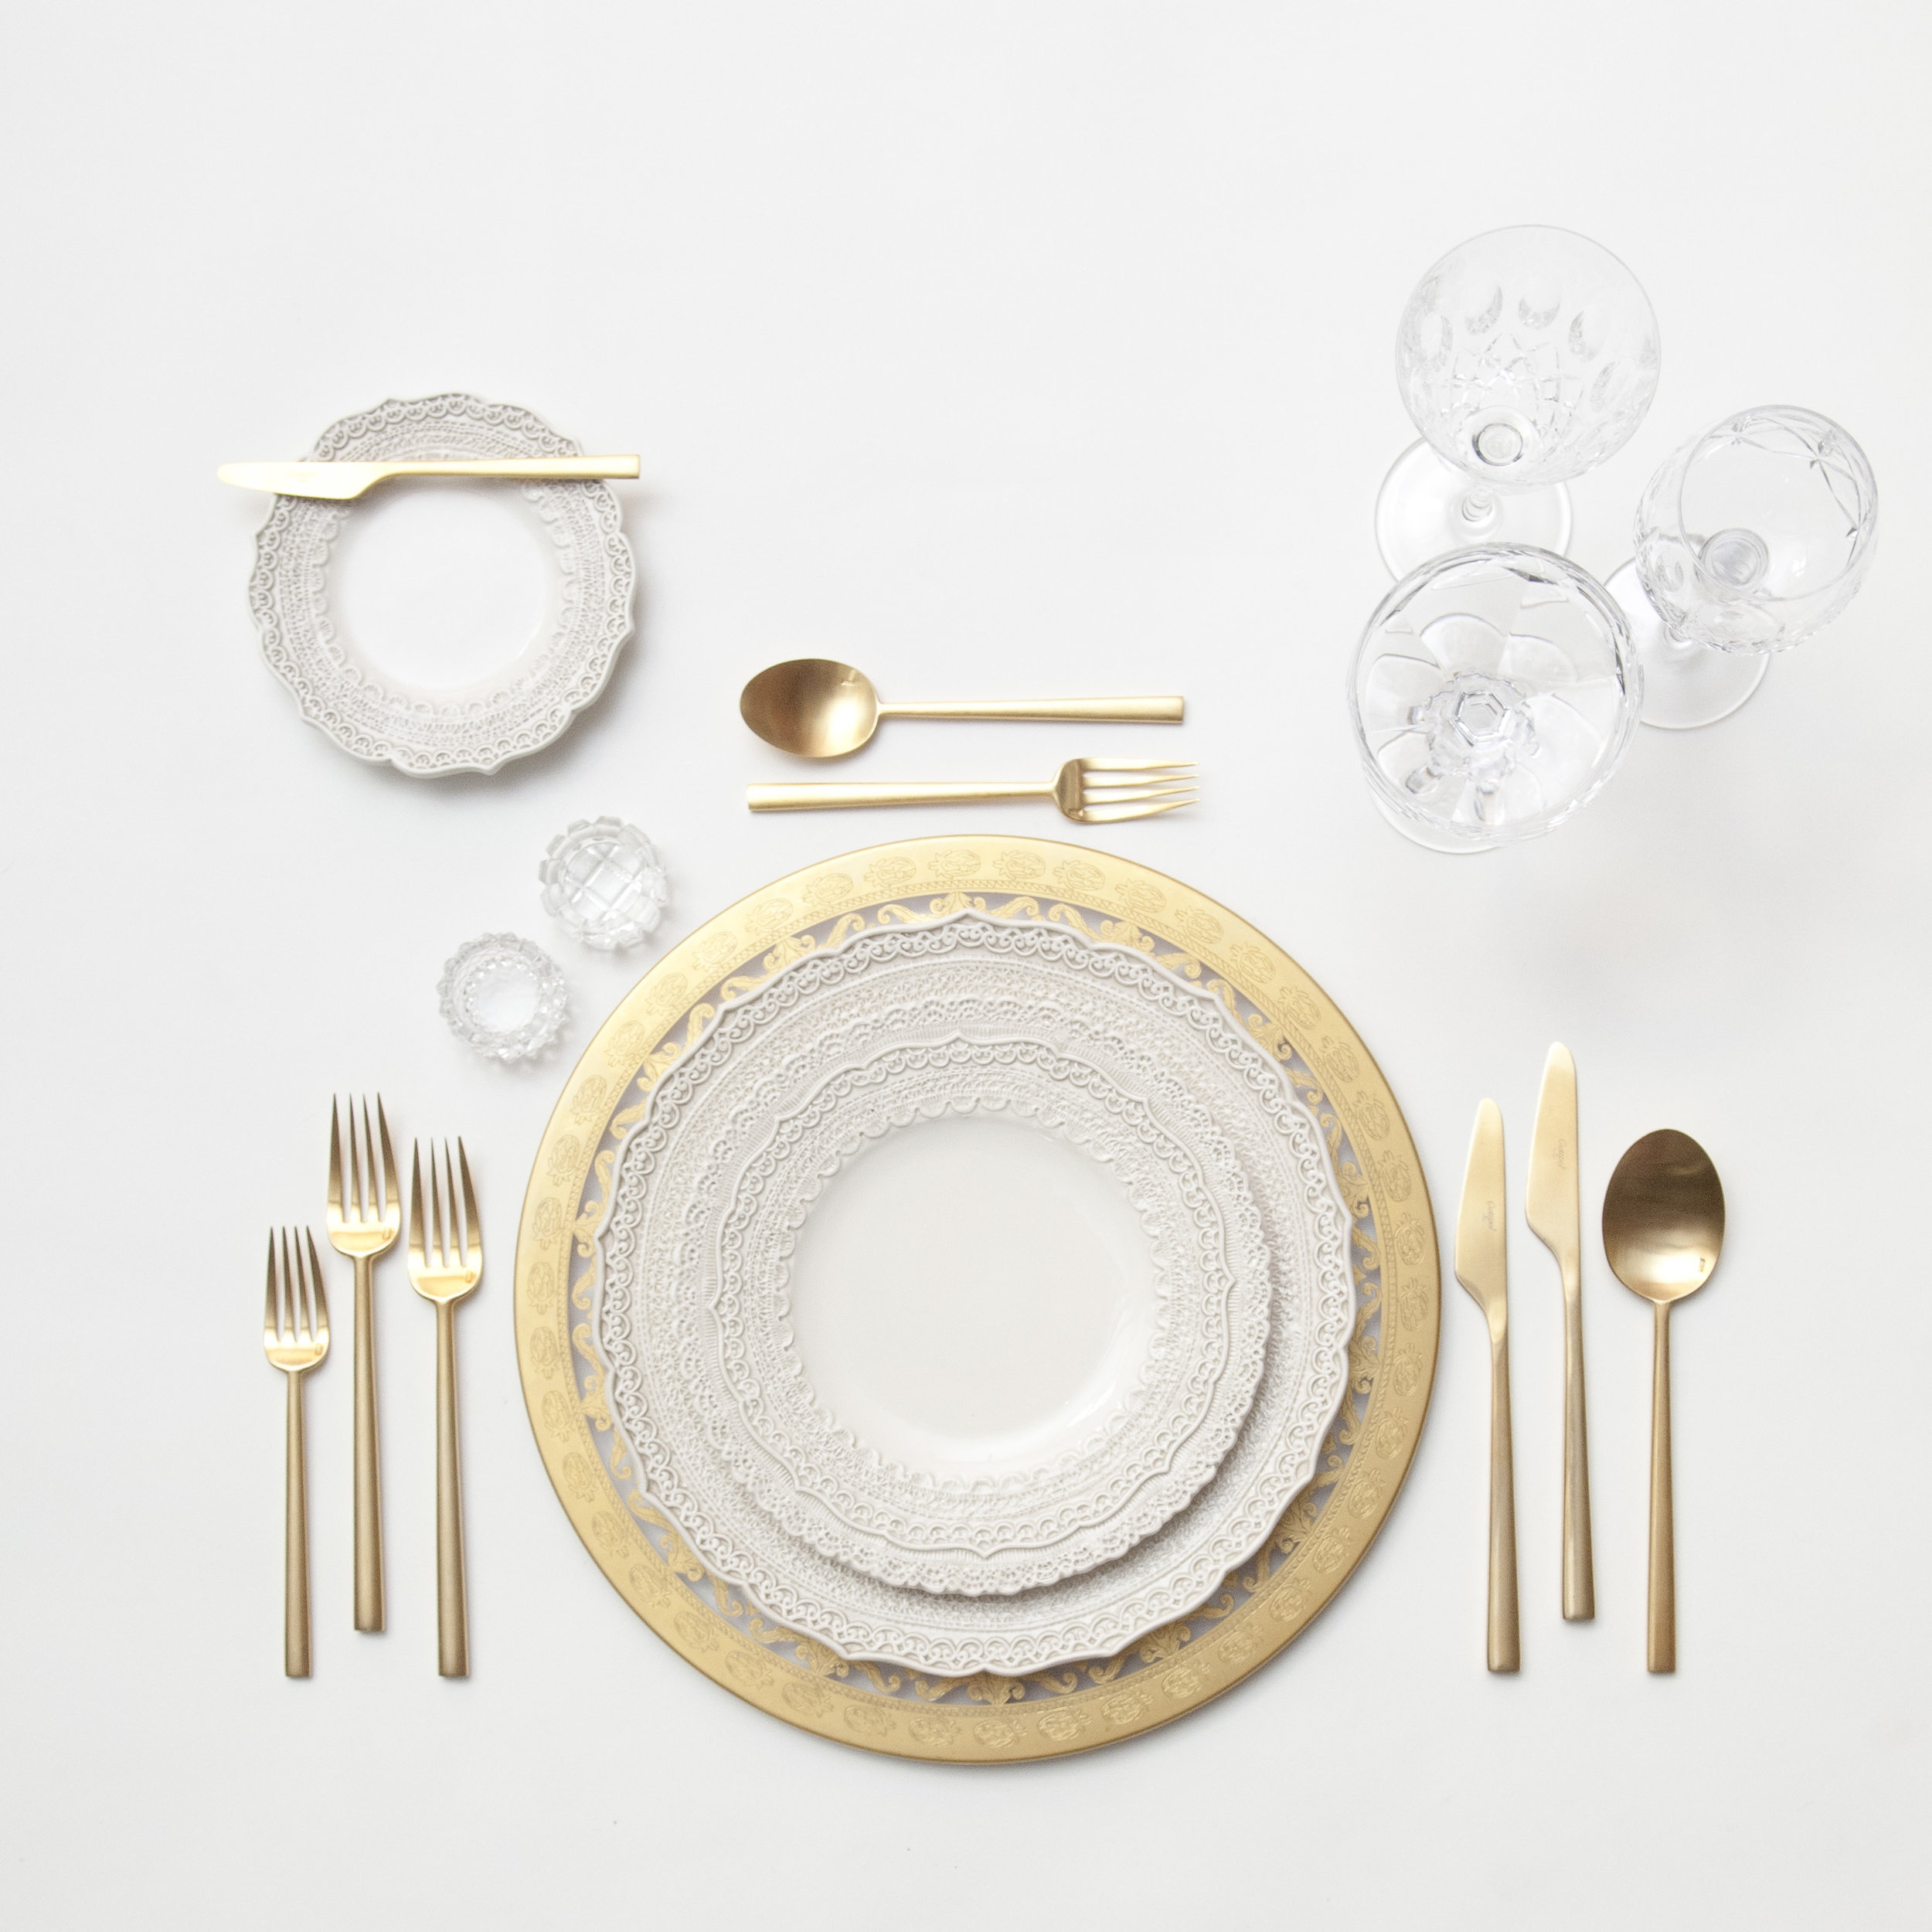 RENT: Versailles Glass Chargers in 24k Gold + Lace Dinnerware in White + Rondo Flatware in Brushed 24k Gold + Vintage Cut Crystal Goblets + Vintage Champagne Coupes + Antique Crystal Salt Cellars  SHOP: Rondo Flatware in Brushed 24k Gold